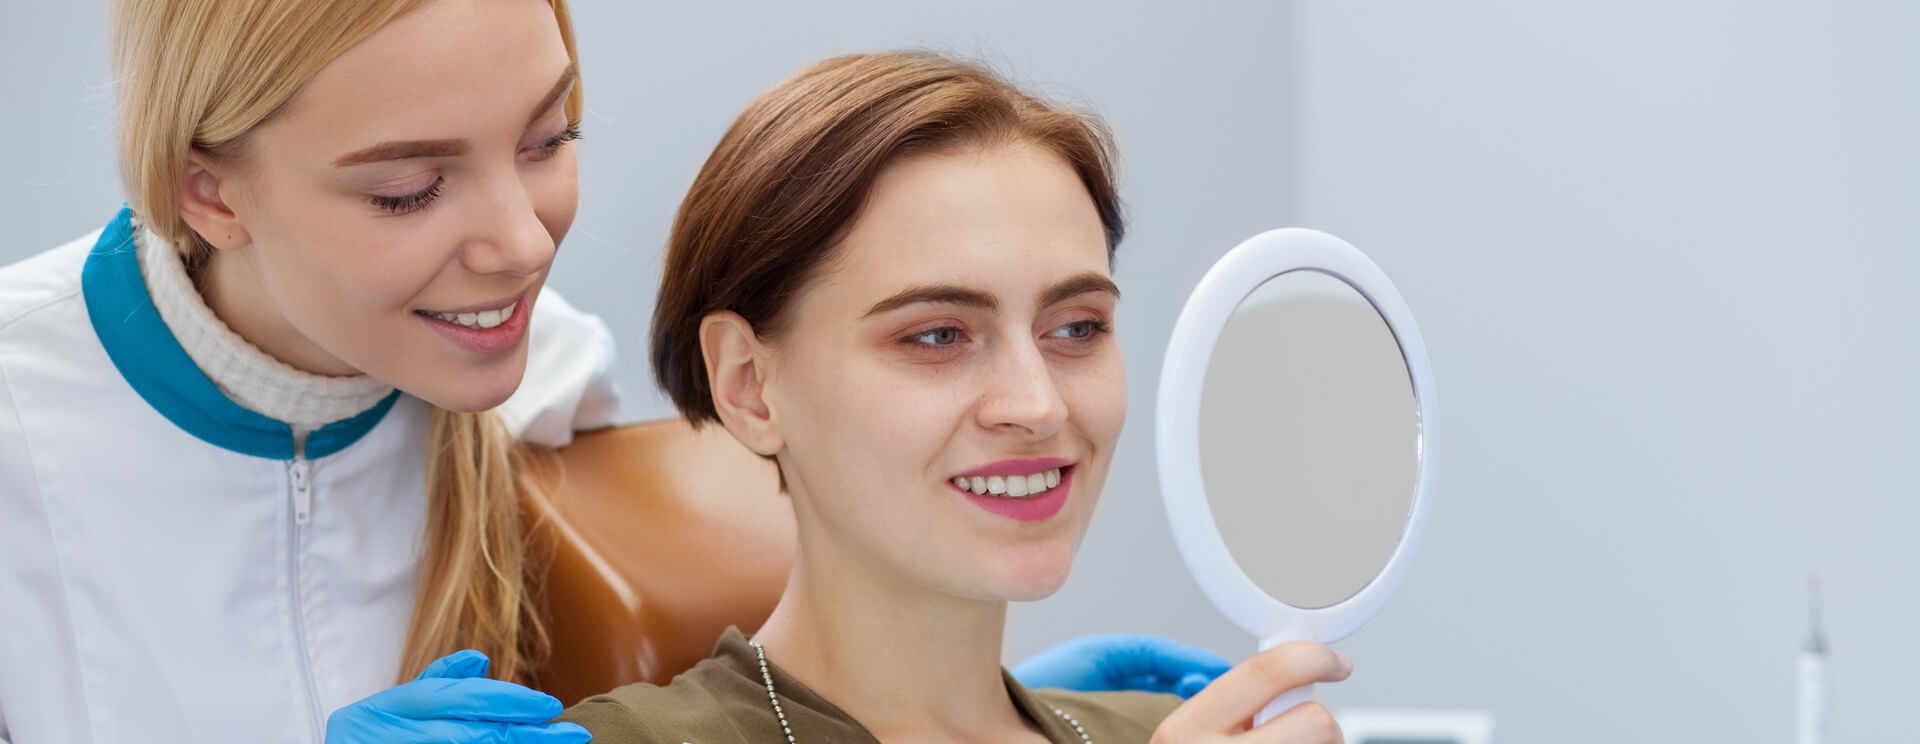 Female patient checking her teeth using a hand mirror after dental treatment